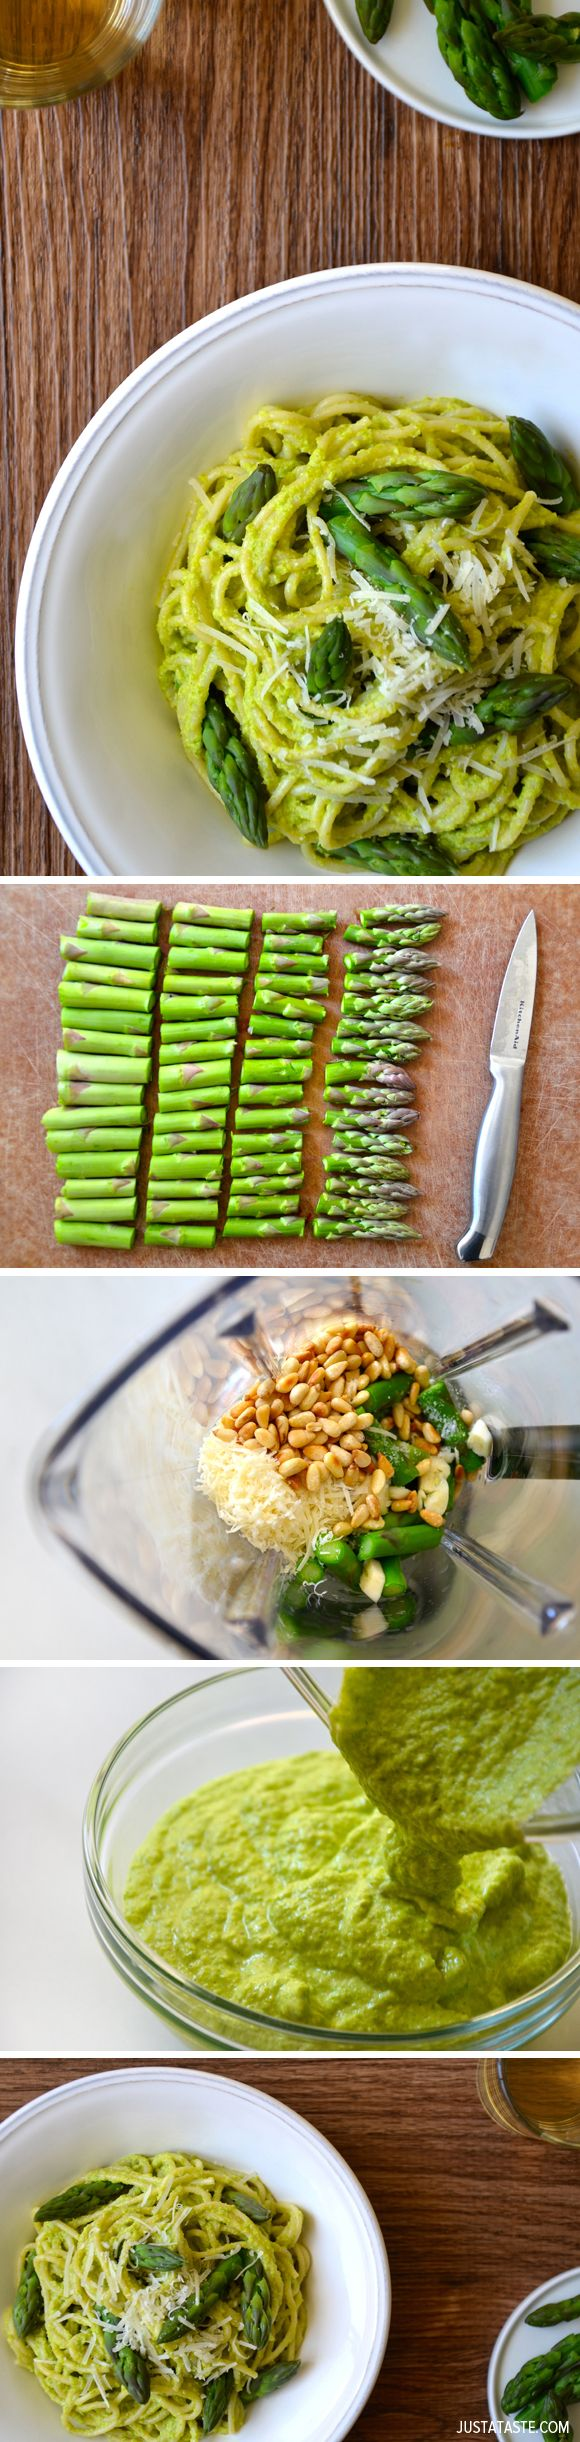 Cheesy Asparagus Pesto Pasta #recipe